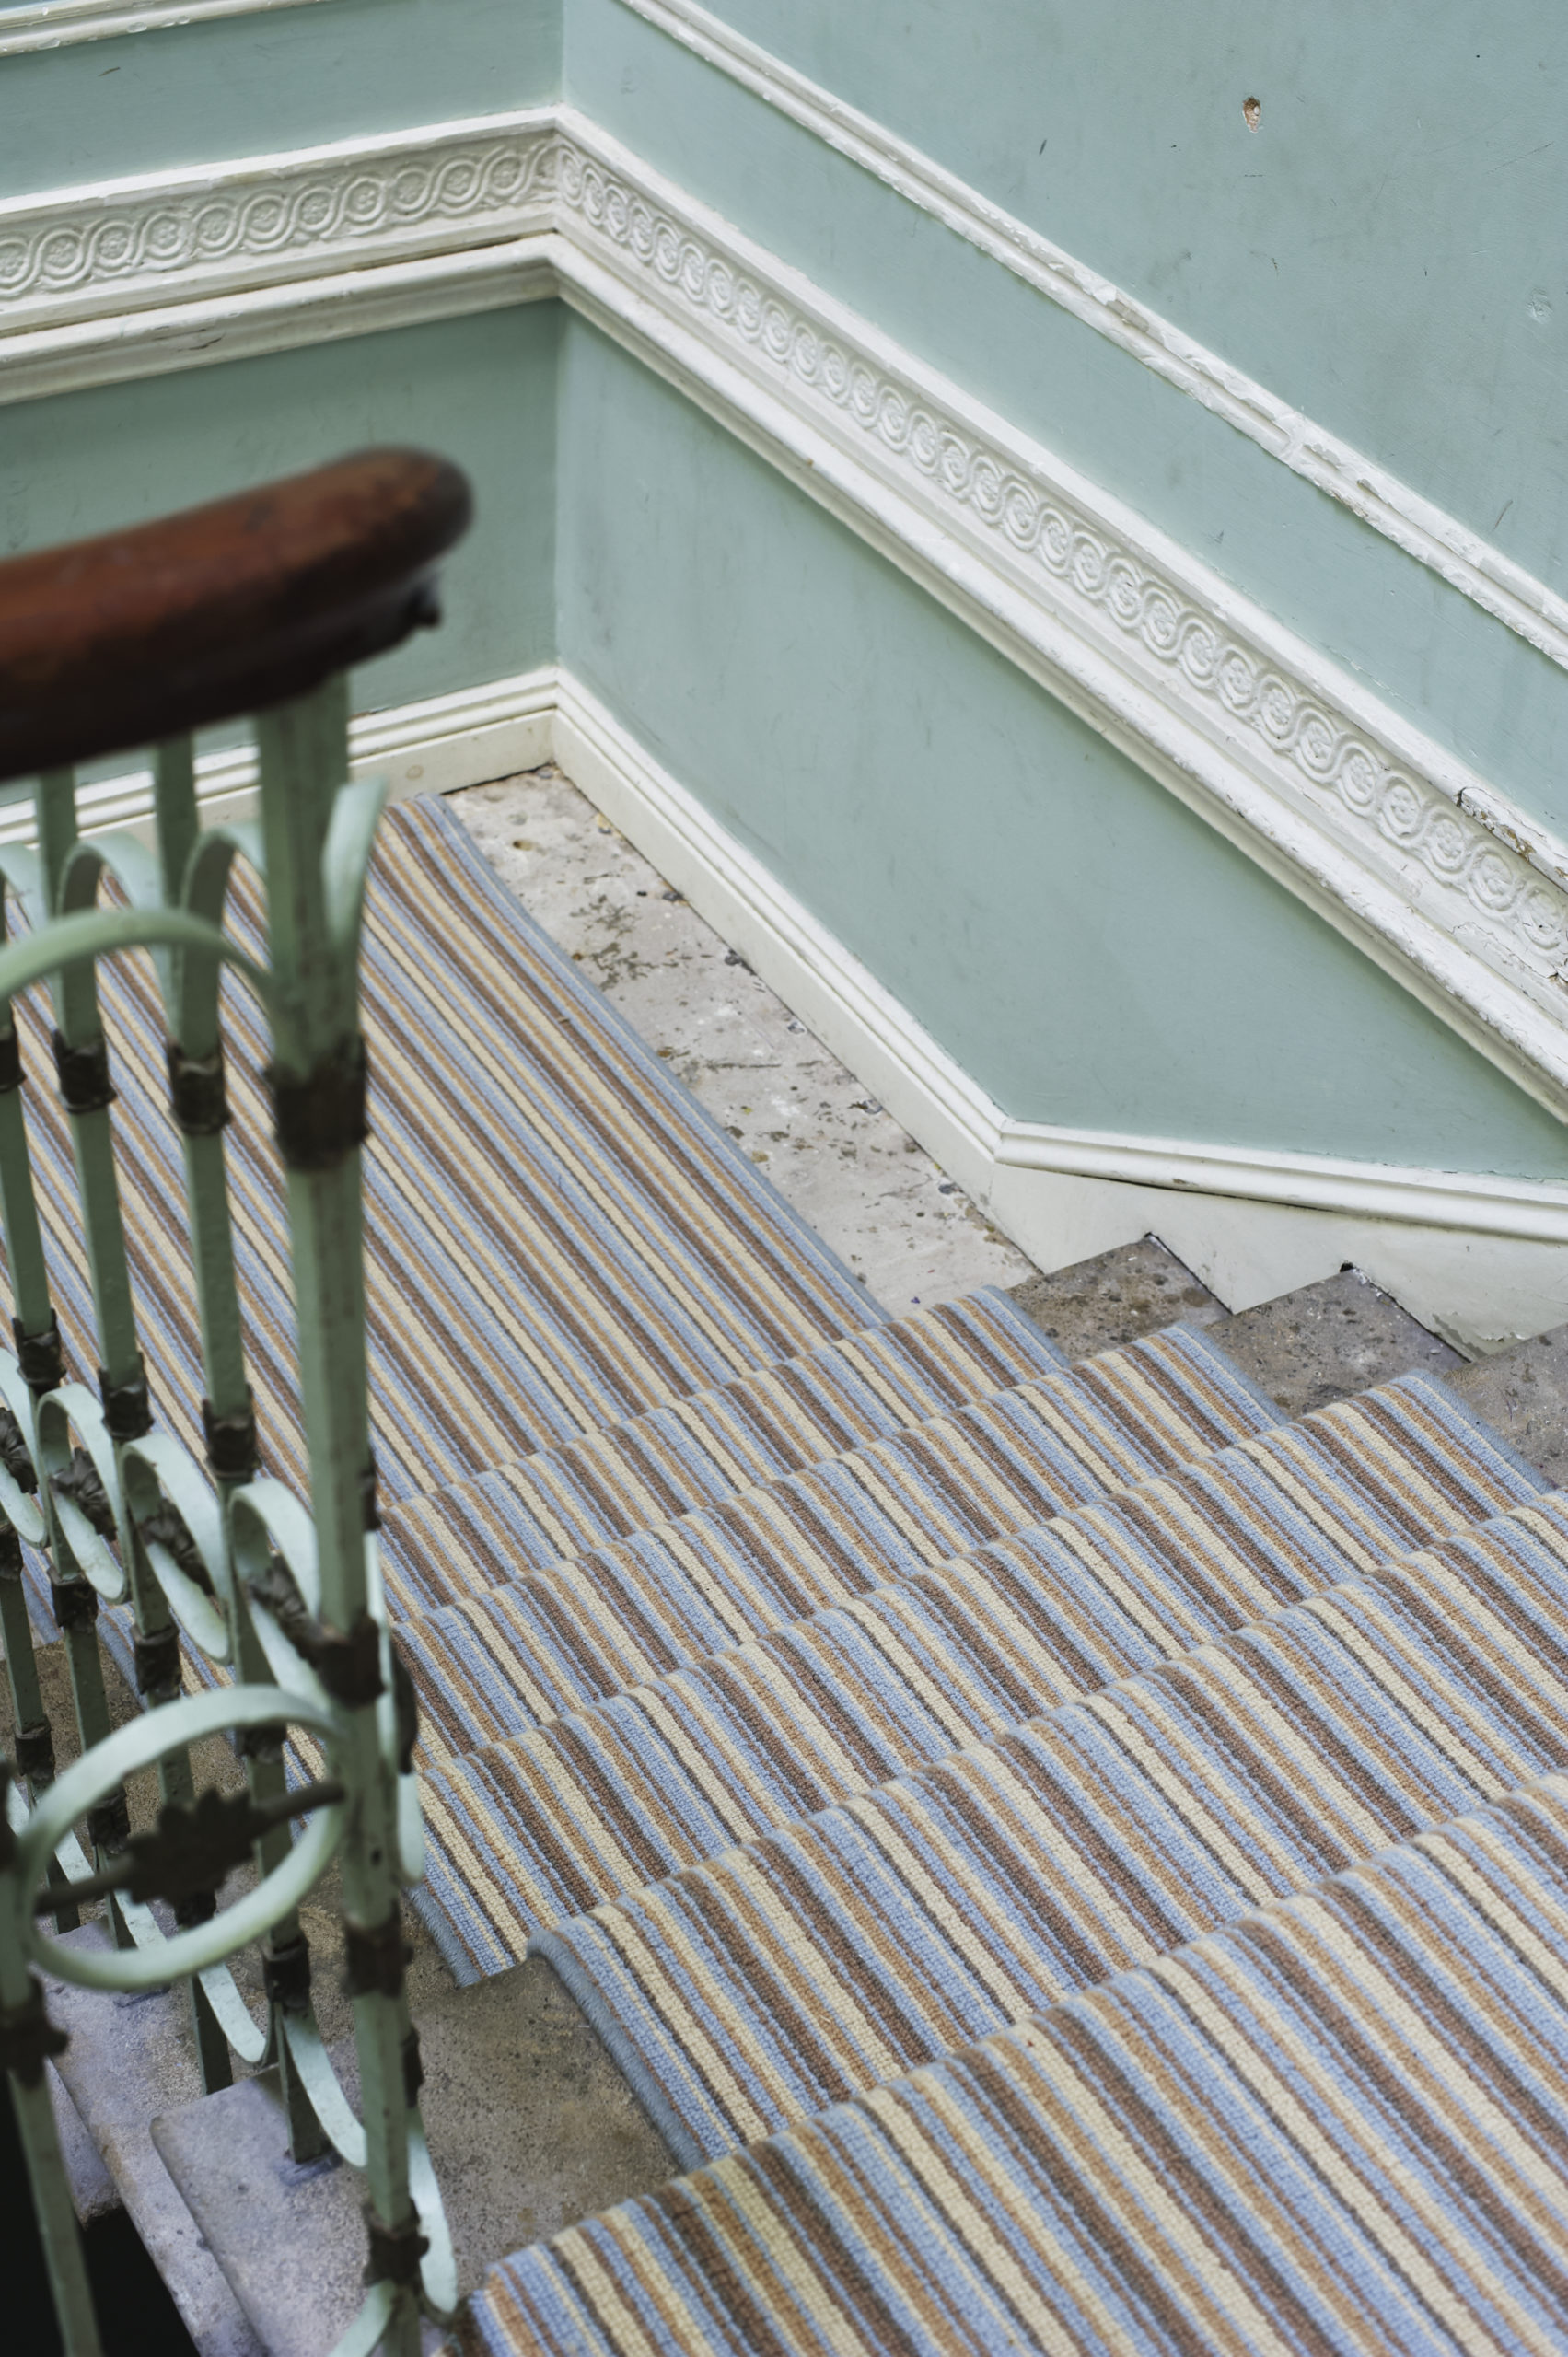 Blue and Brown Striped Carpet on a stairwell.